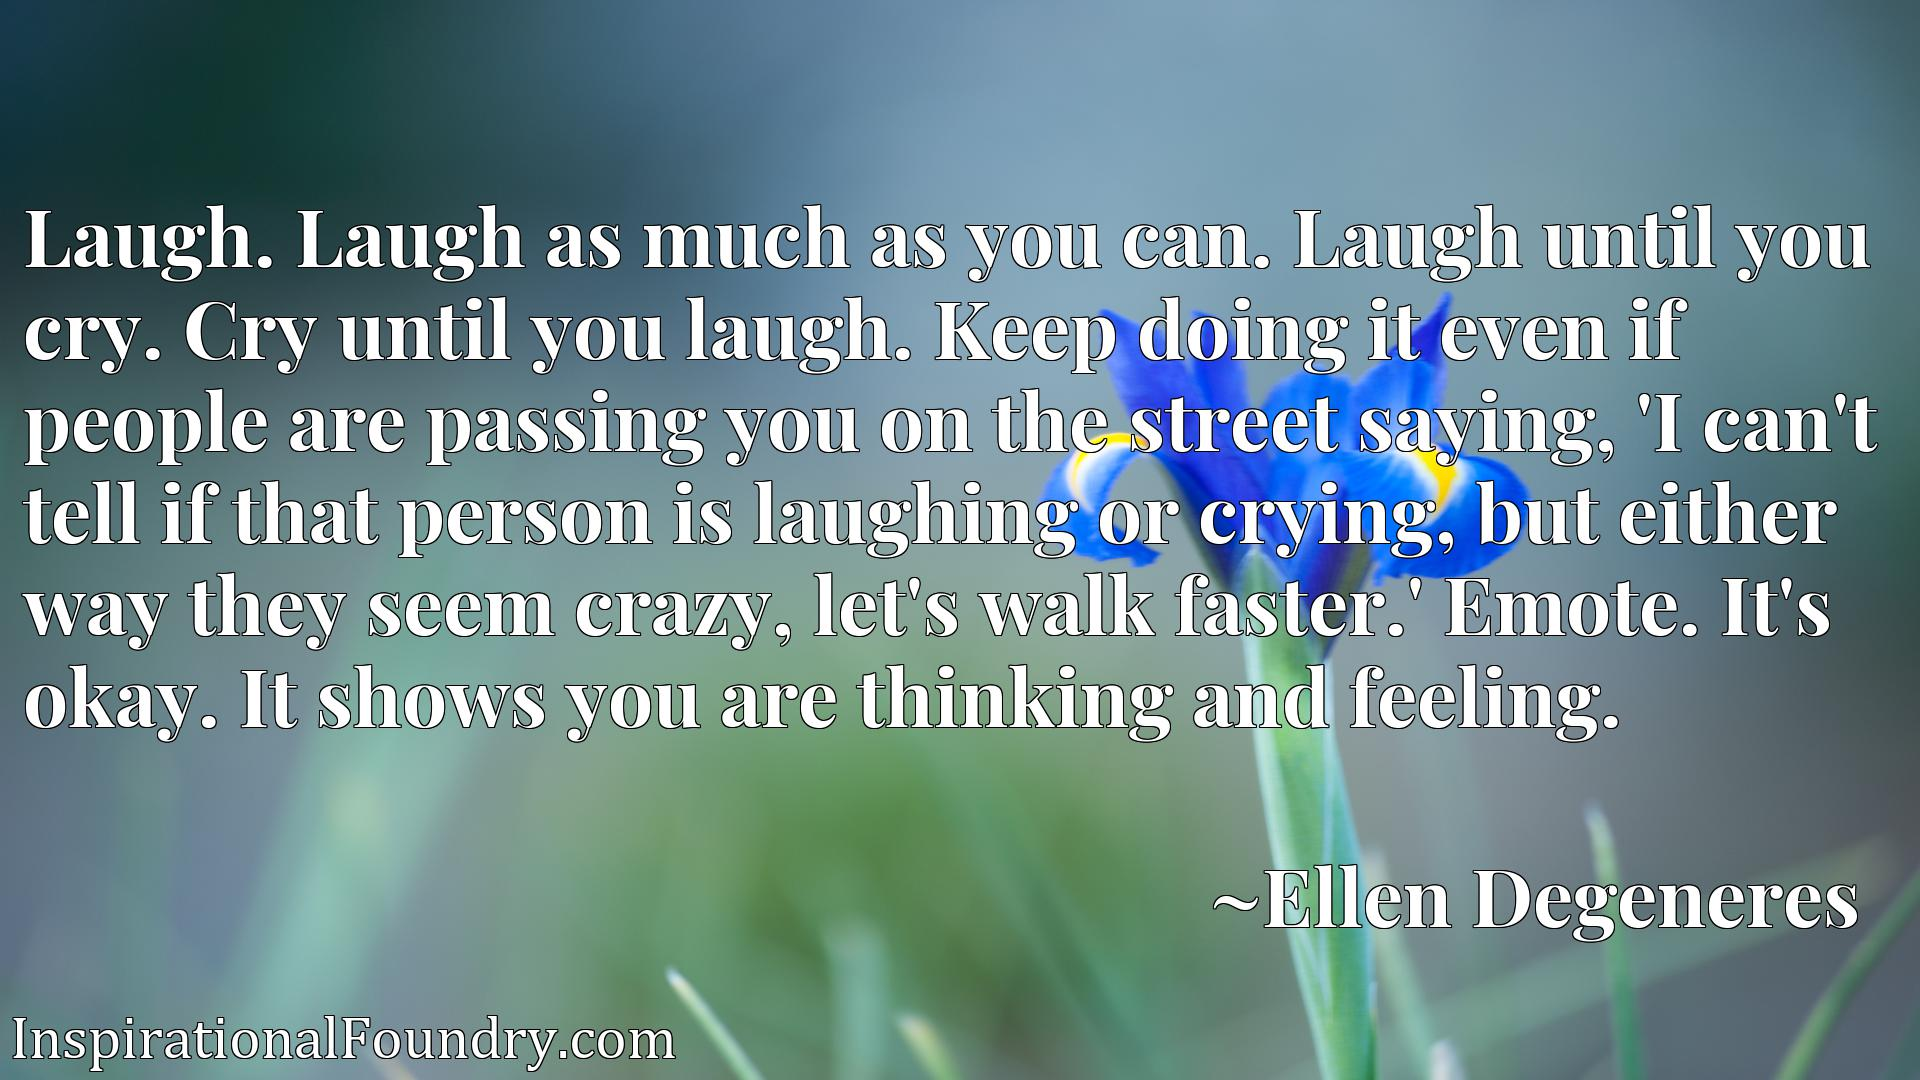 Laugh. Laugh as much as you can. Laugh until you cry. Cry until you laugh. Keep doing it even if people are passing you on the street saying, 'I can't tell if that person is laughing or crying, but either way they seem crazy, let's walk faster.' Emote. It's okay. It shows you are thinking and feeling.